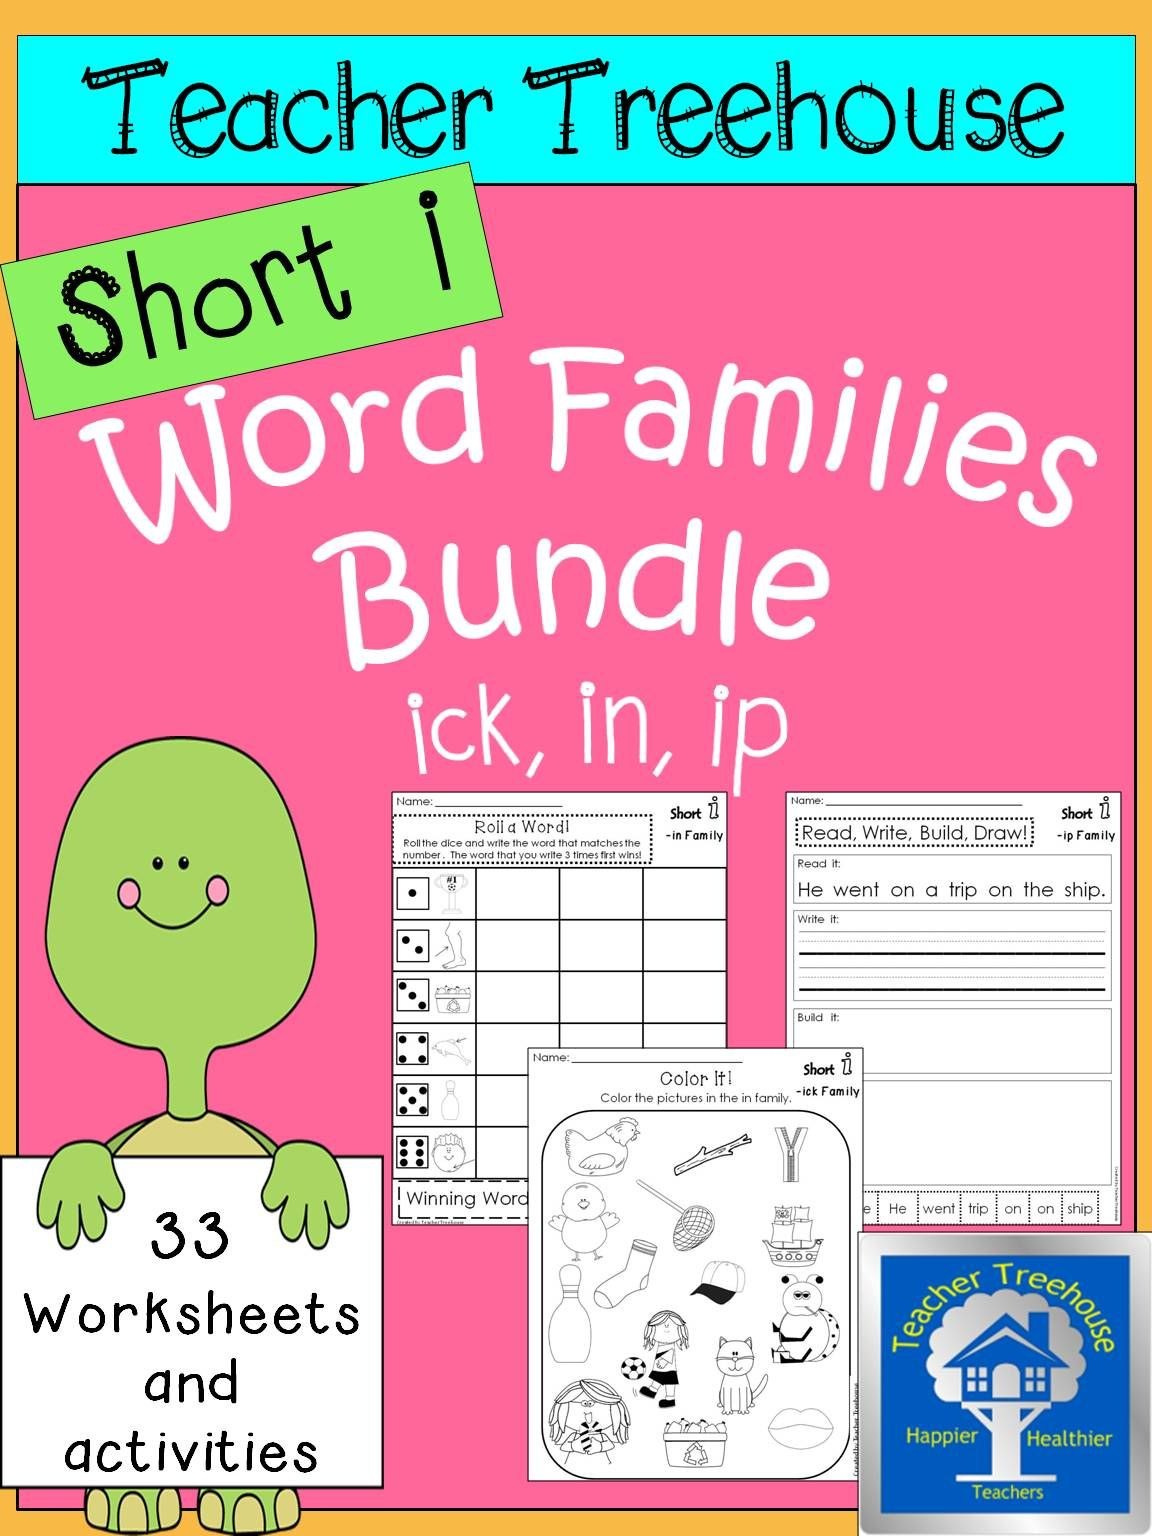 Short I Word Families Worksheets Bundle Ick Family In